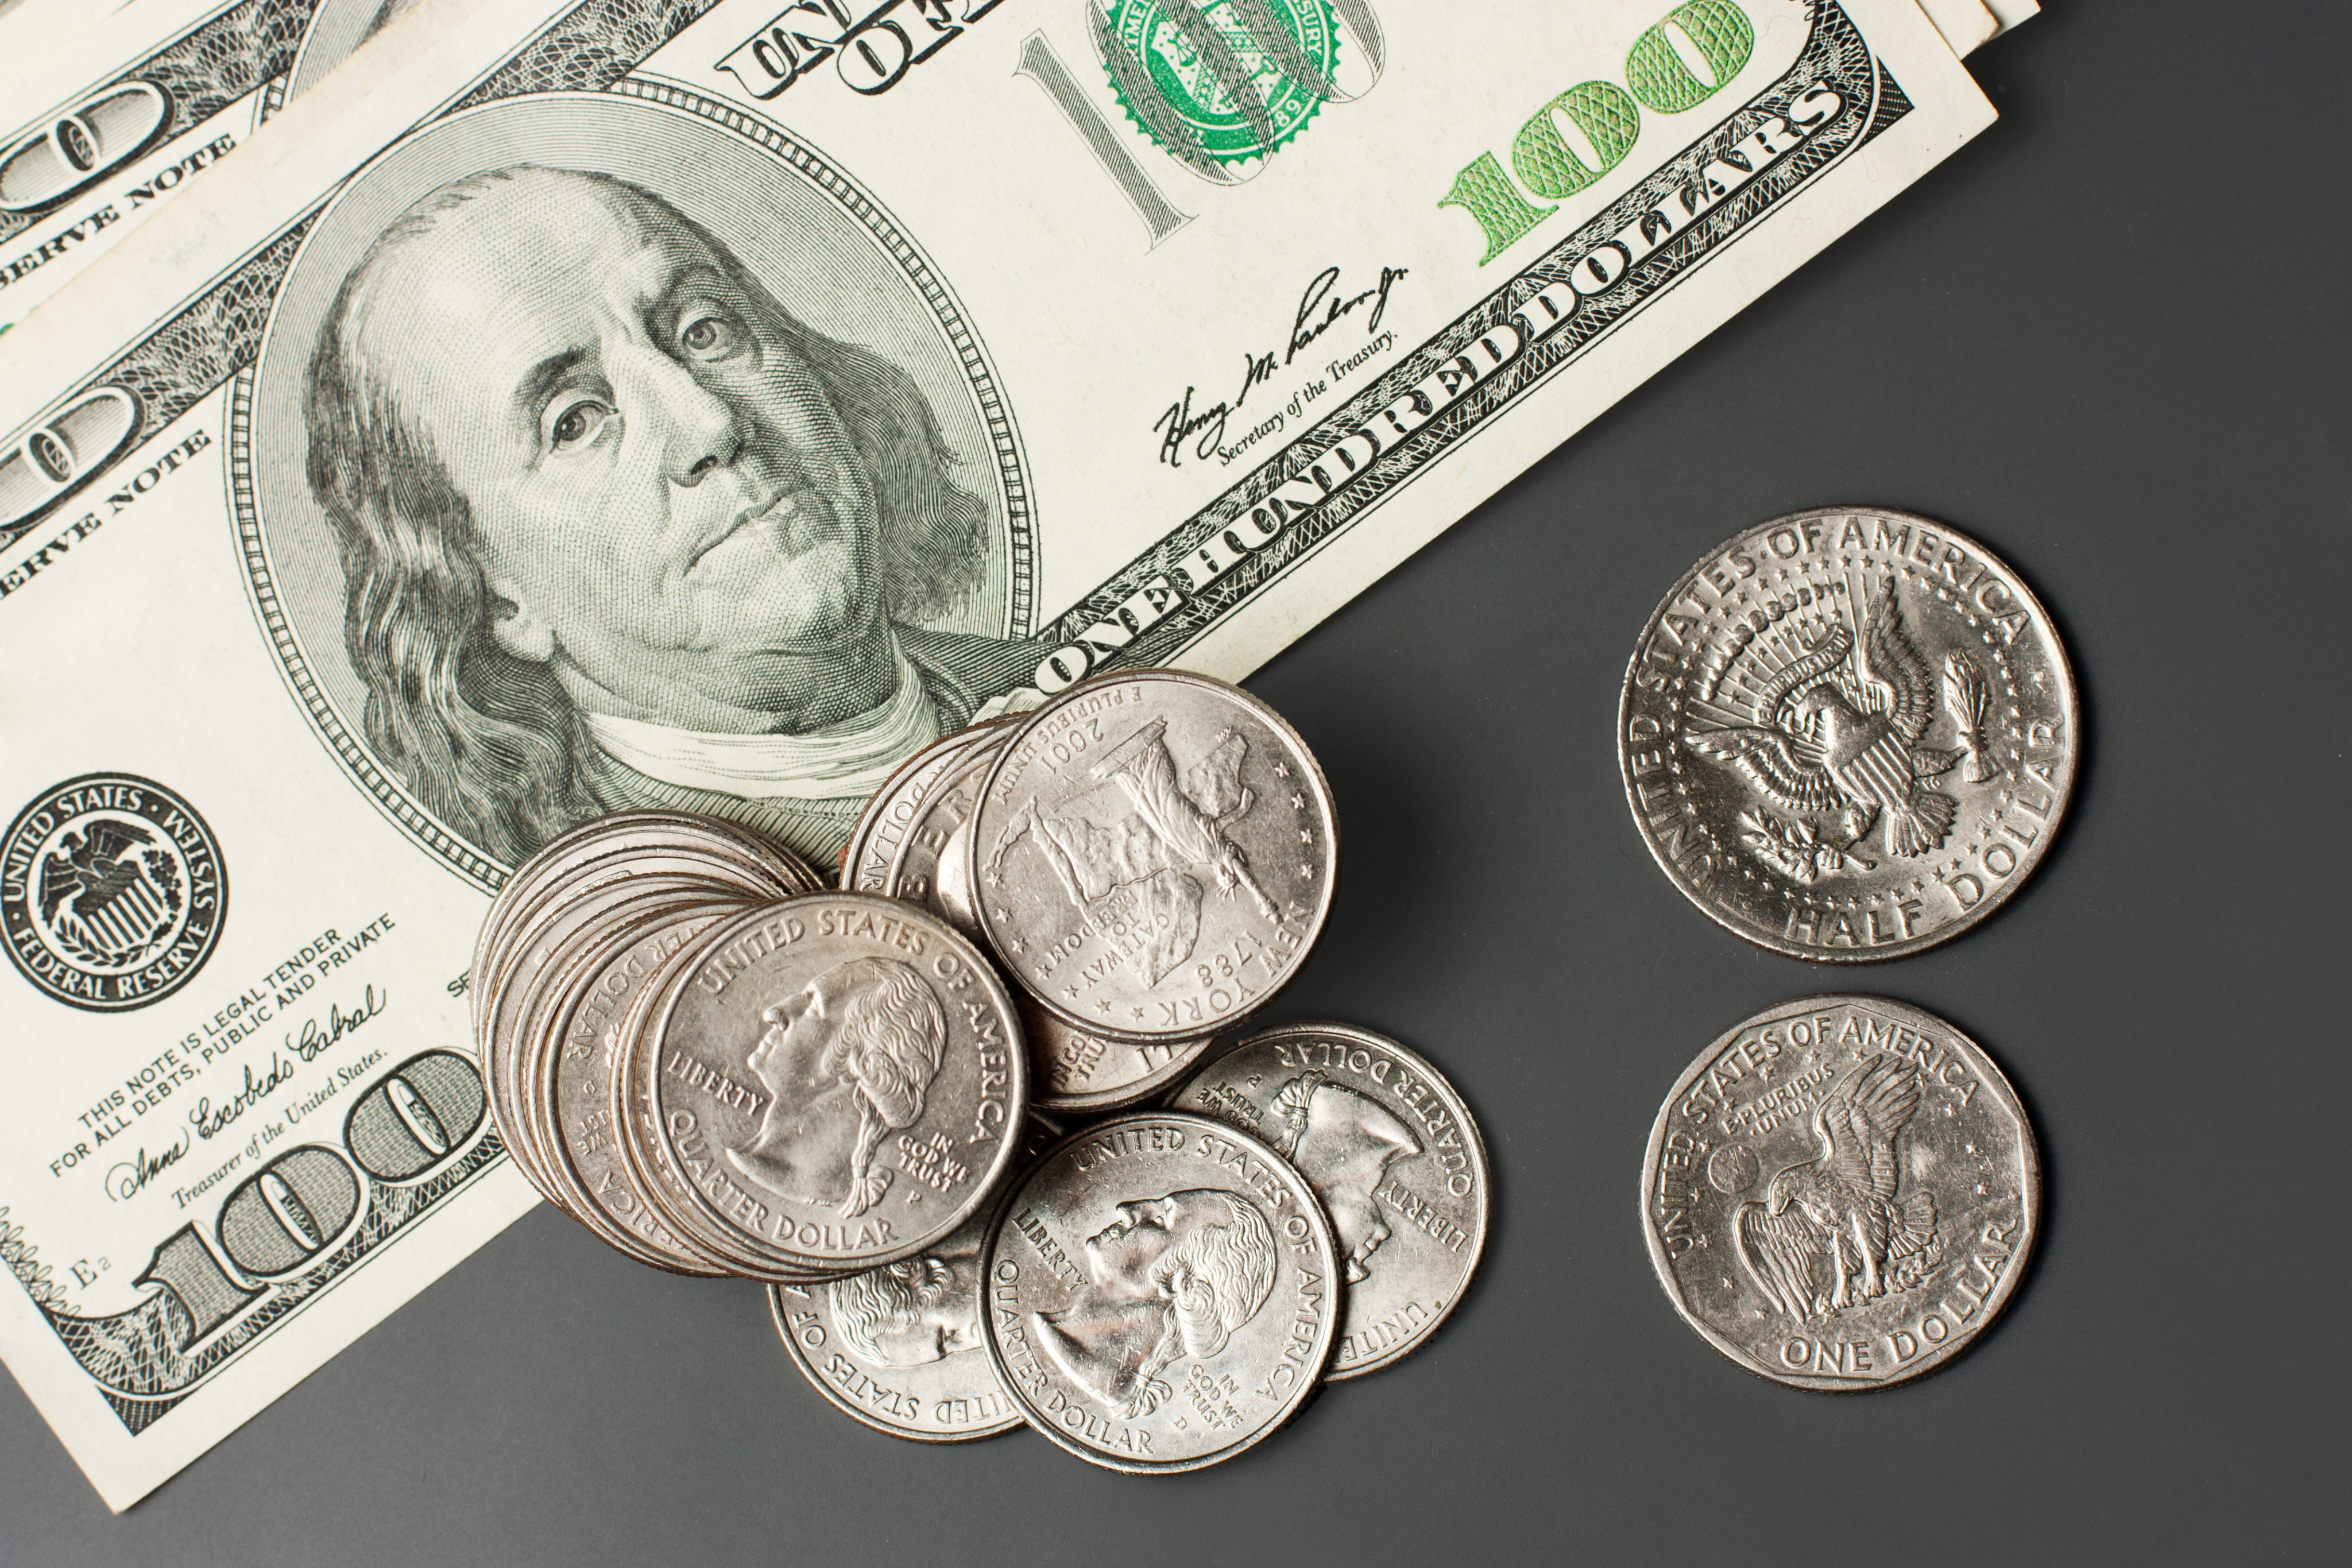 Debt Reduction Services >> 8 Guaranteed Ways to Get Rid of Debt Fast | Money Talks News